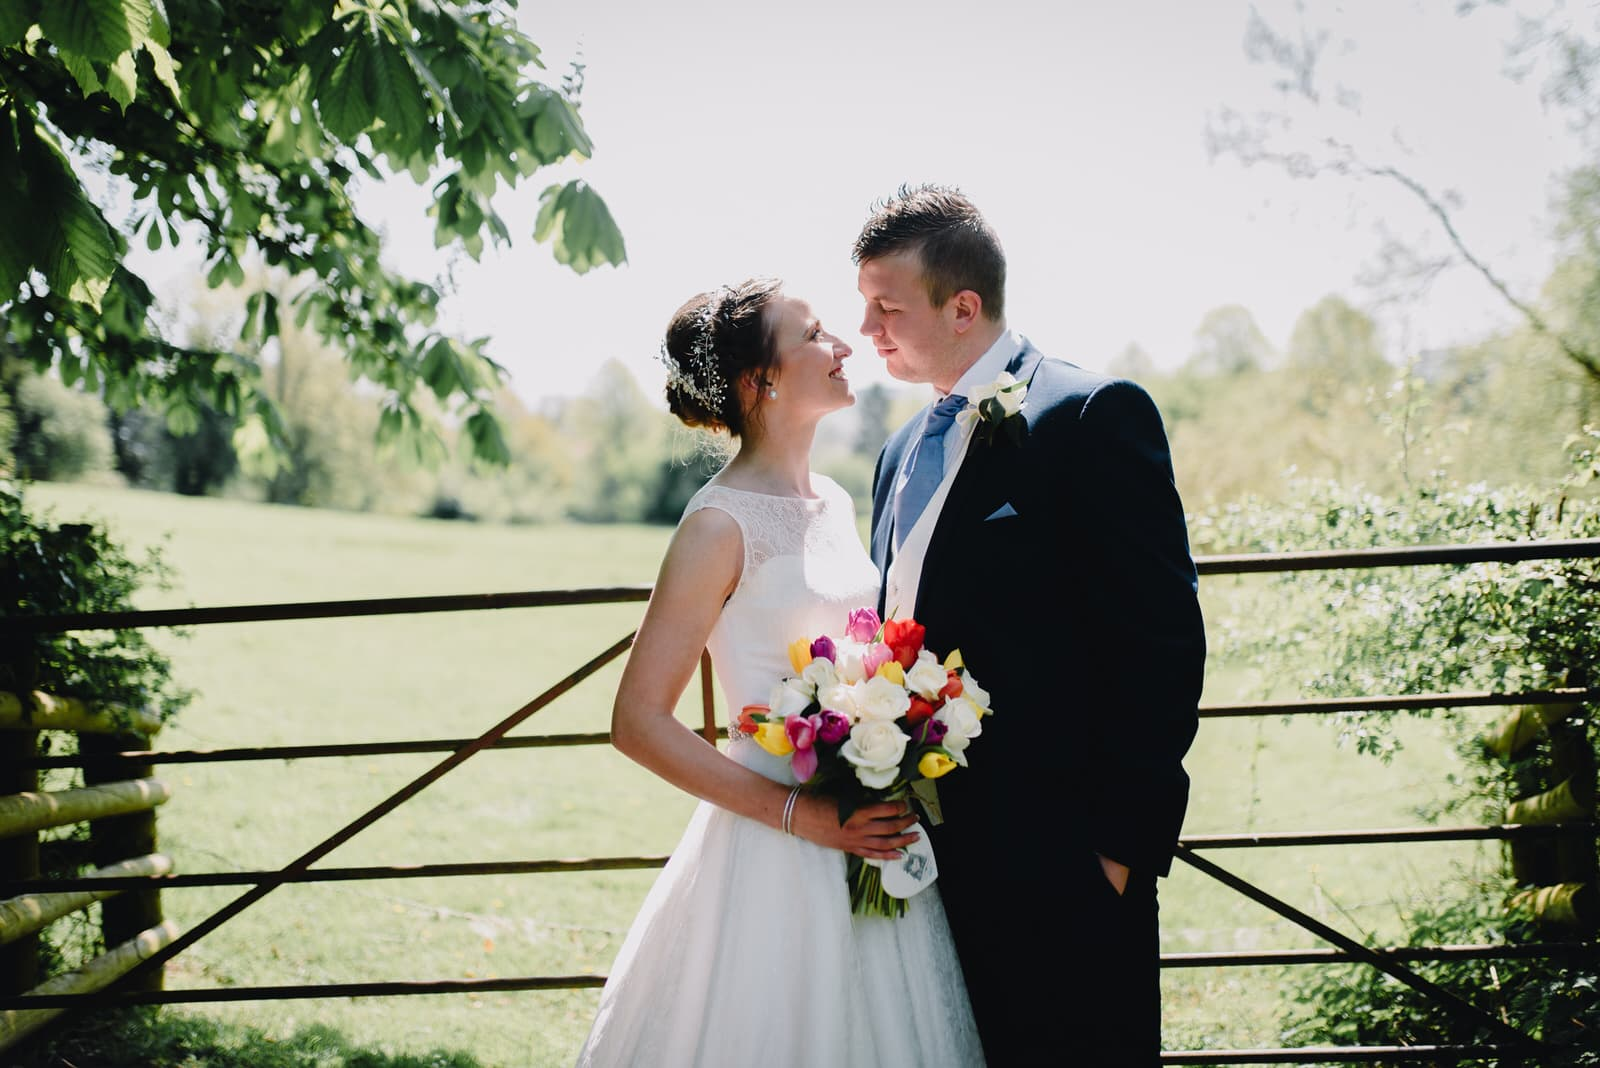 Staverton Estate Wedding - Daventry 83